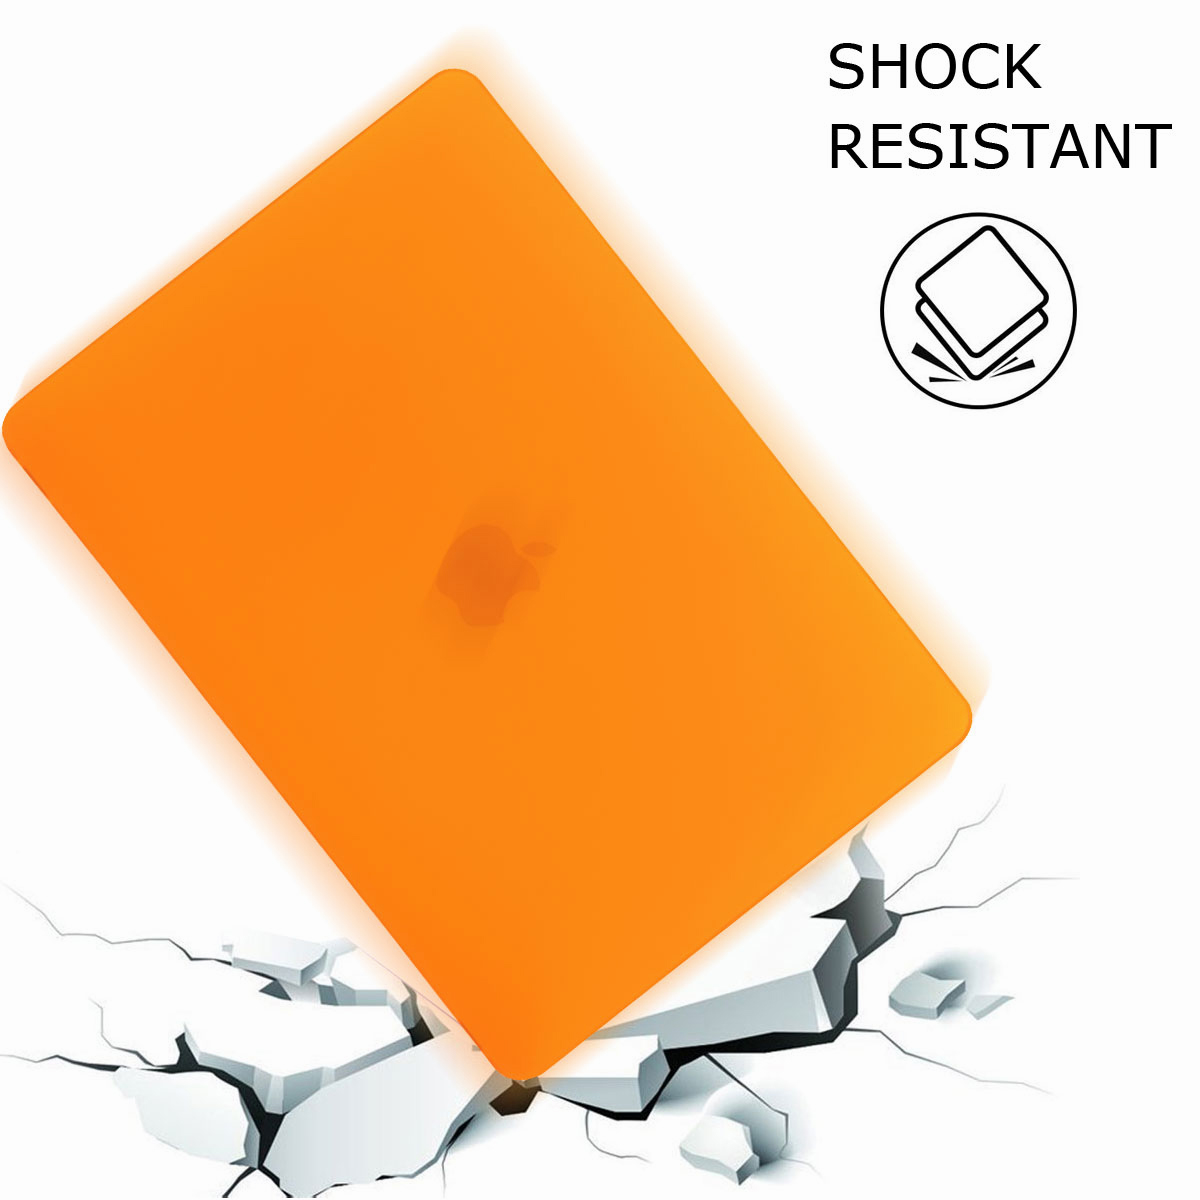 Shockproof-Rubberized-Matte-Hard-Case-Cover-For-Macbook-13-034-15-034-Inch-A1286-A1278 thumbnail 30